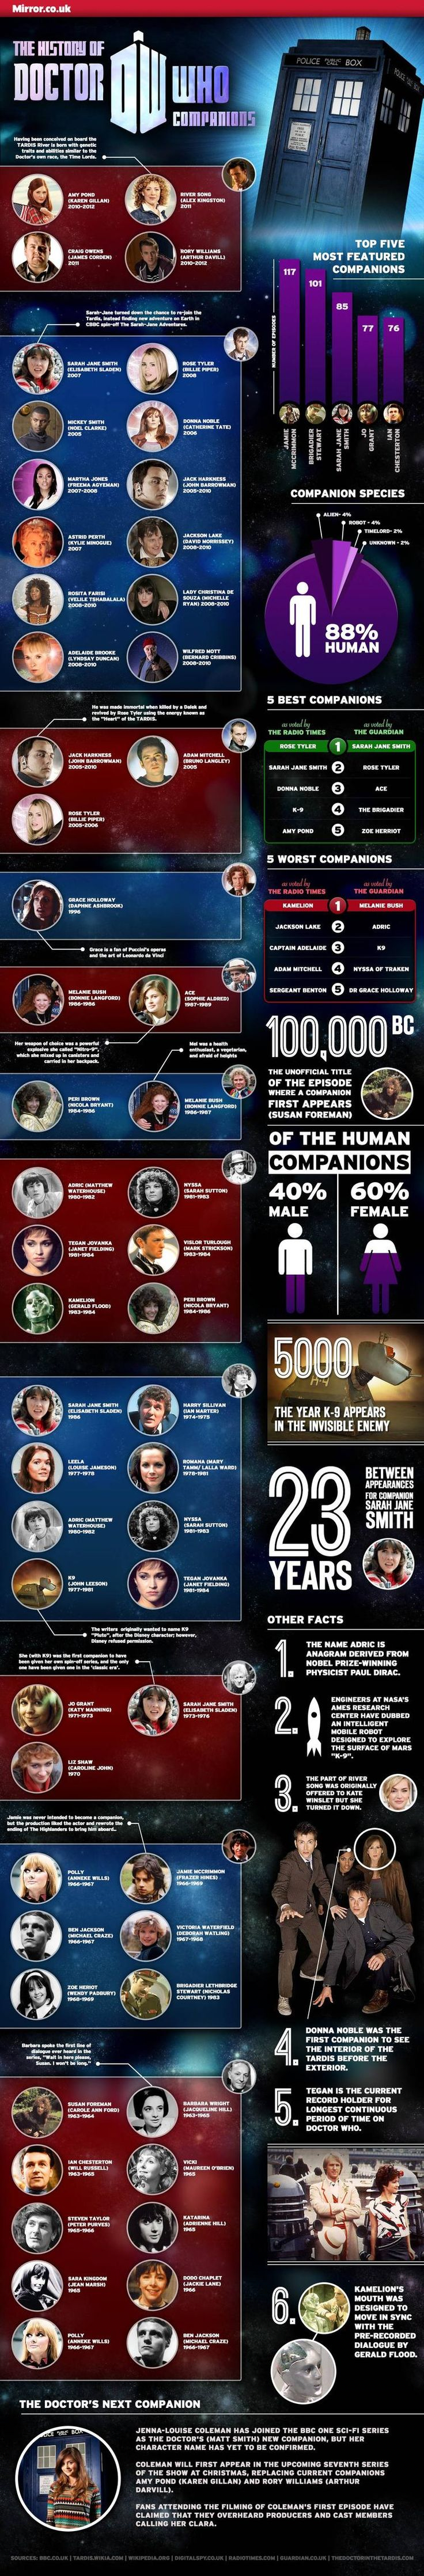 The History of Doctor Who Companions [Infographic] ~ The Geek Twins...Doctor Who ? .. :)... http://www.pinterest.com/cwsf2010/doctor-who